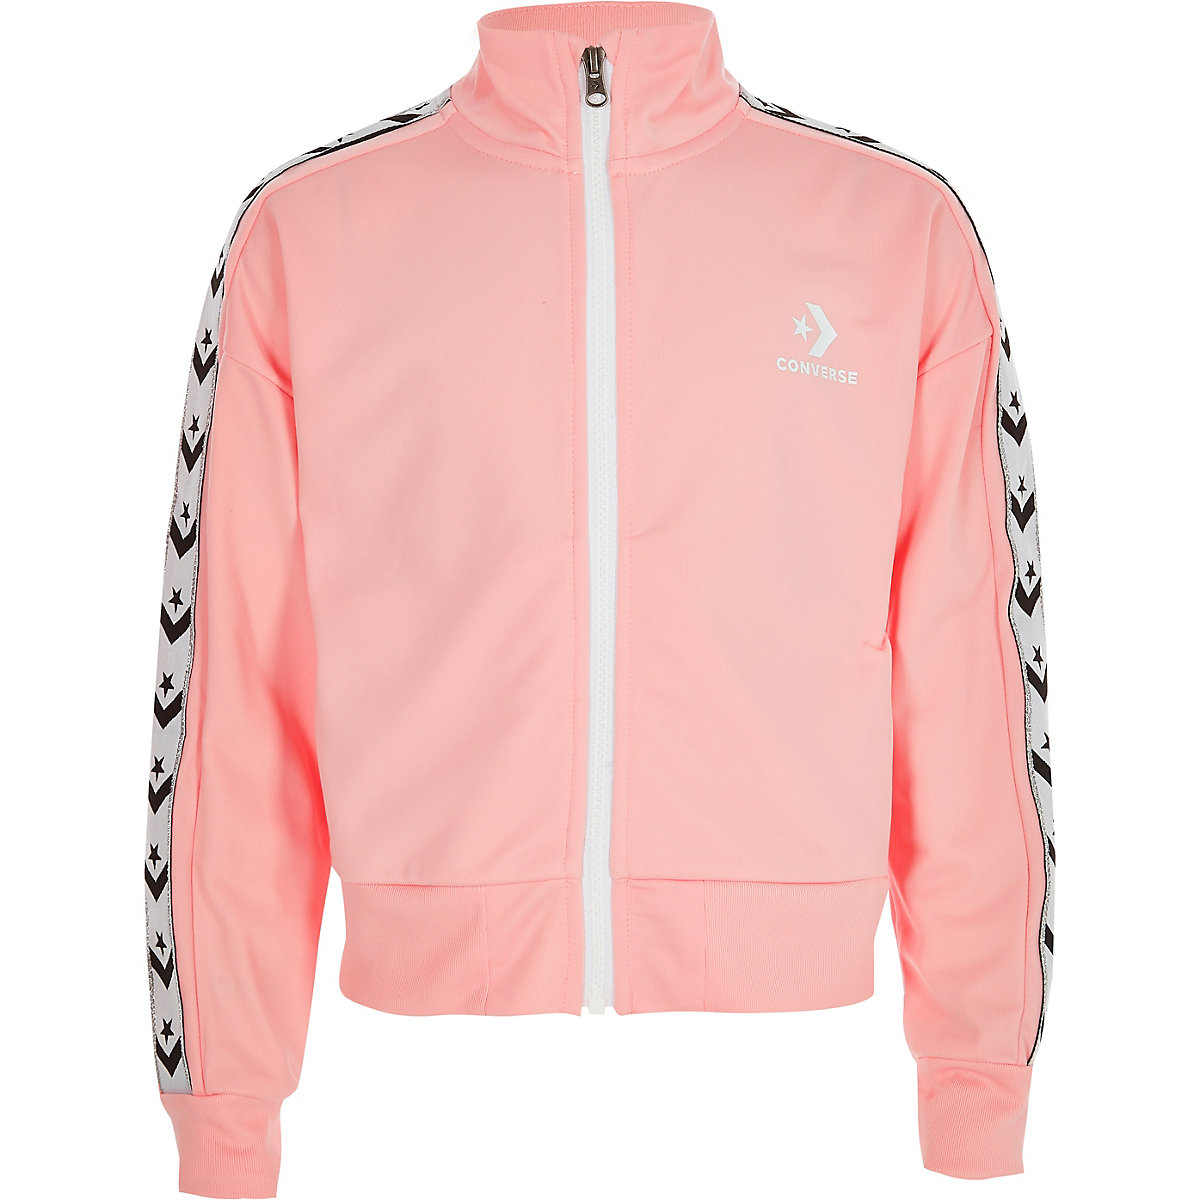 Girls Converse light pink tracksuit jacket